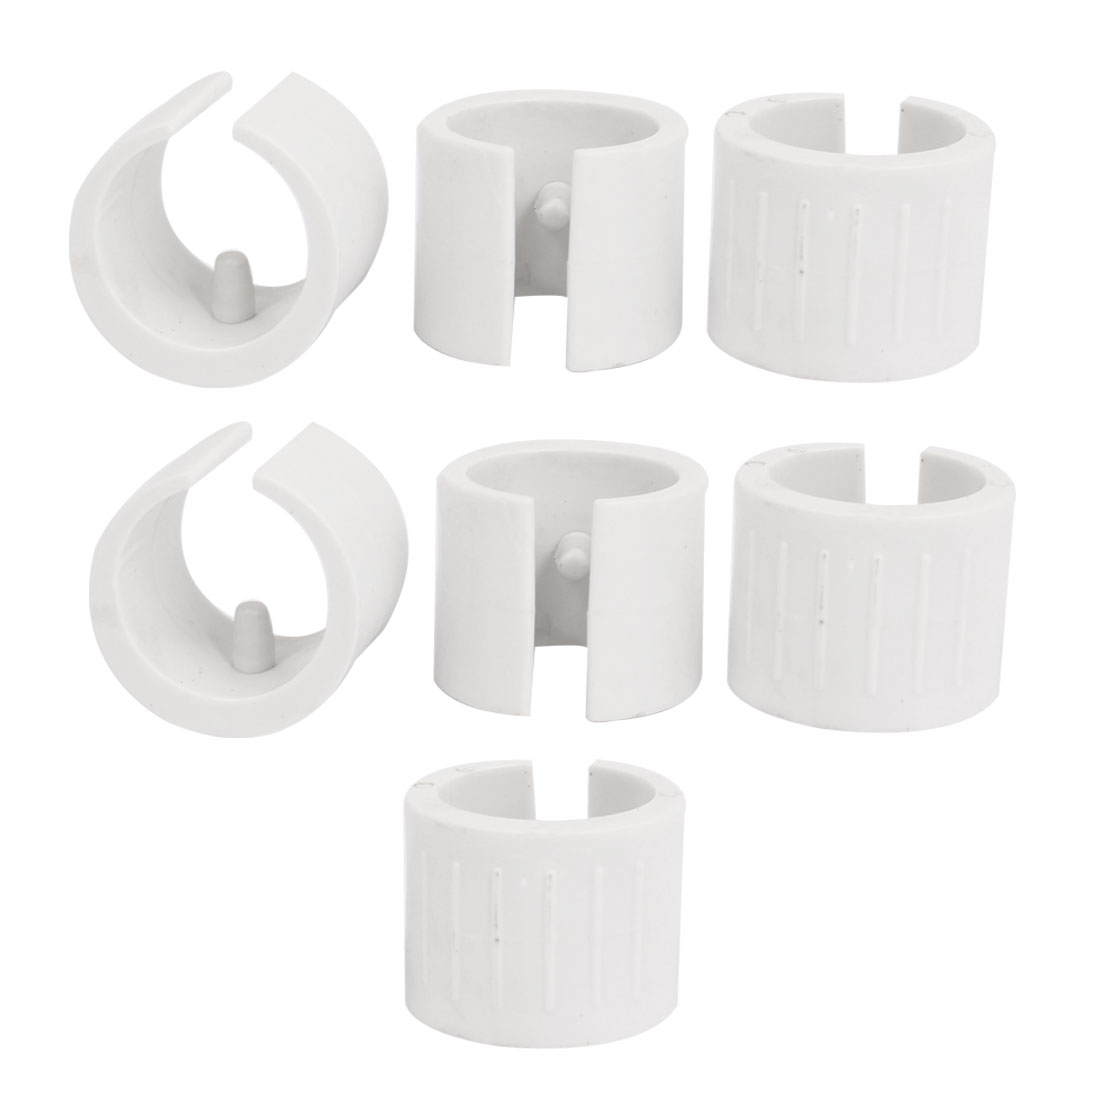 25mm Dia. Nonslip Plastic Round Pipe Clamp Foot Pads for Table 8Pcs White